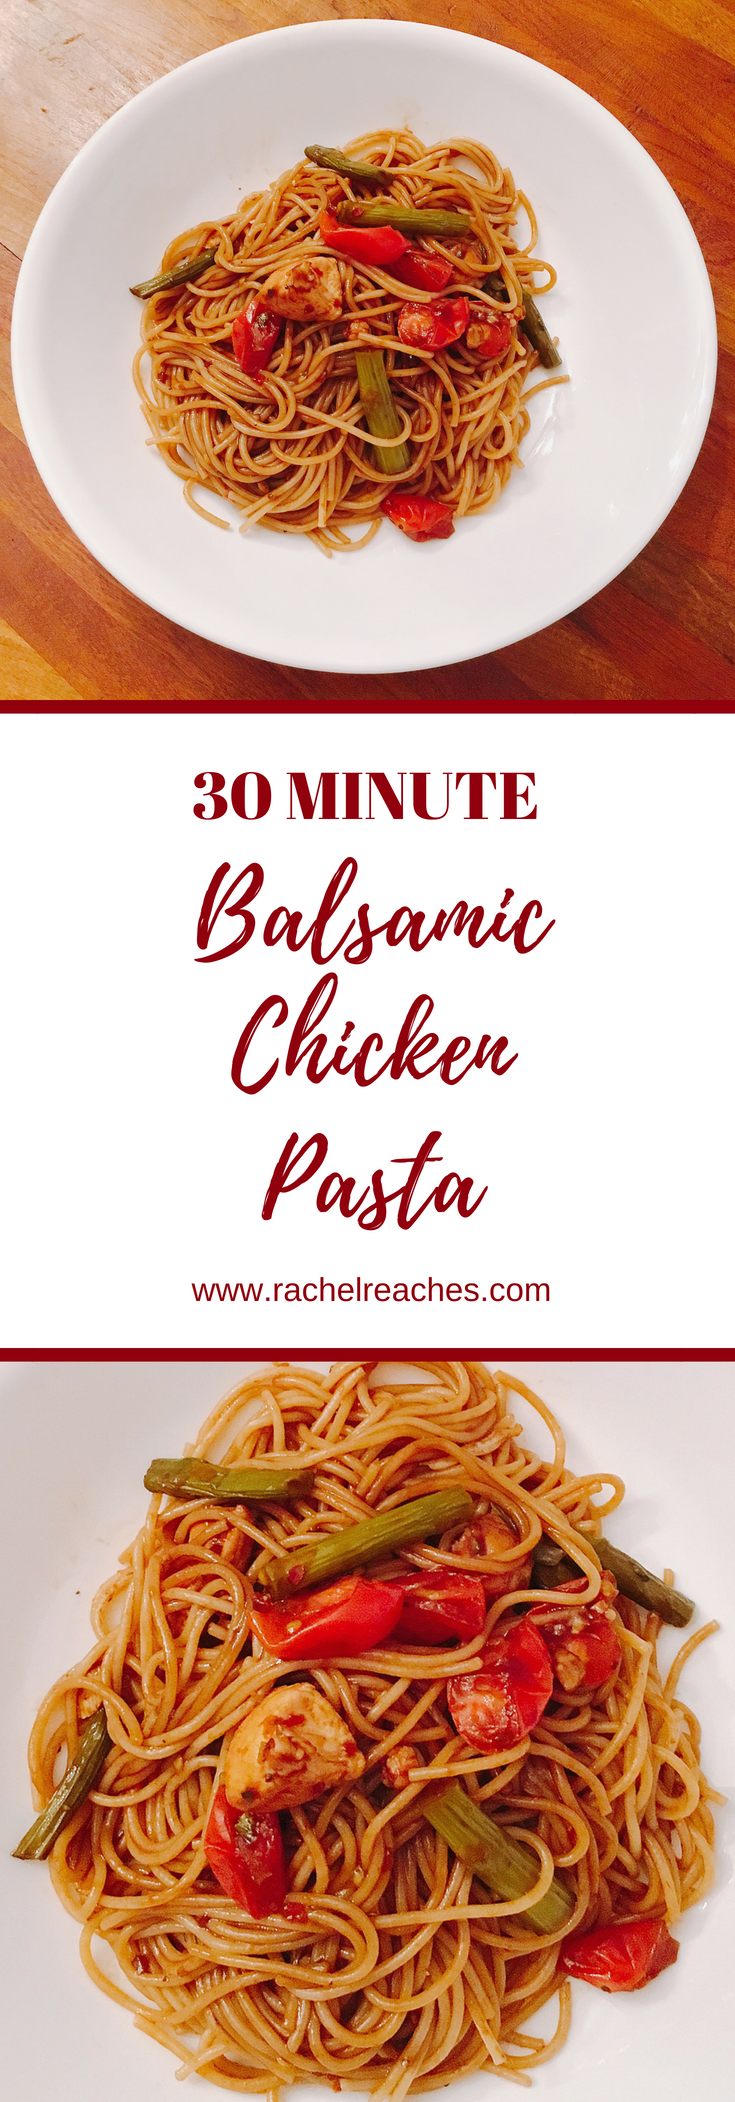 Balsamic Chicken Pasta Pinterest Pin - Healthy Recipes.png